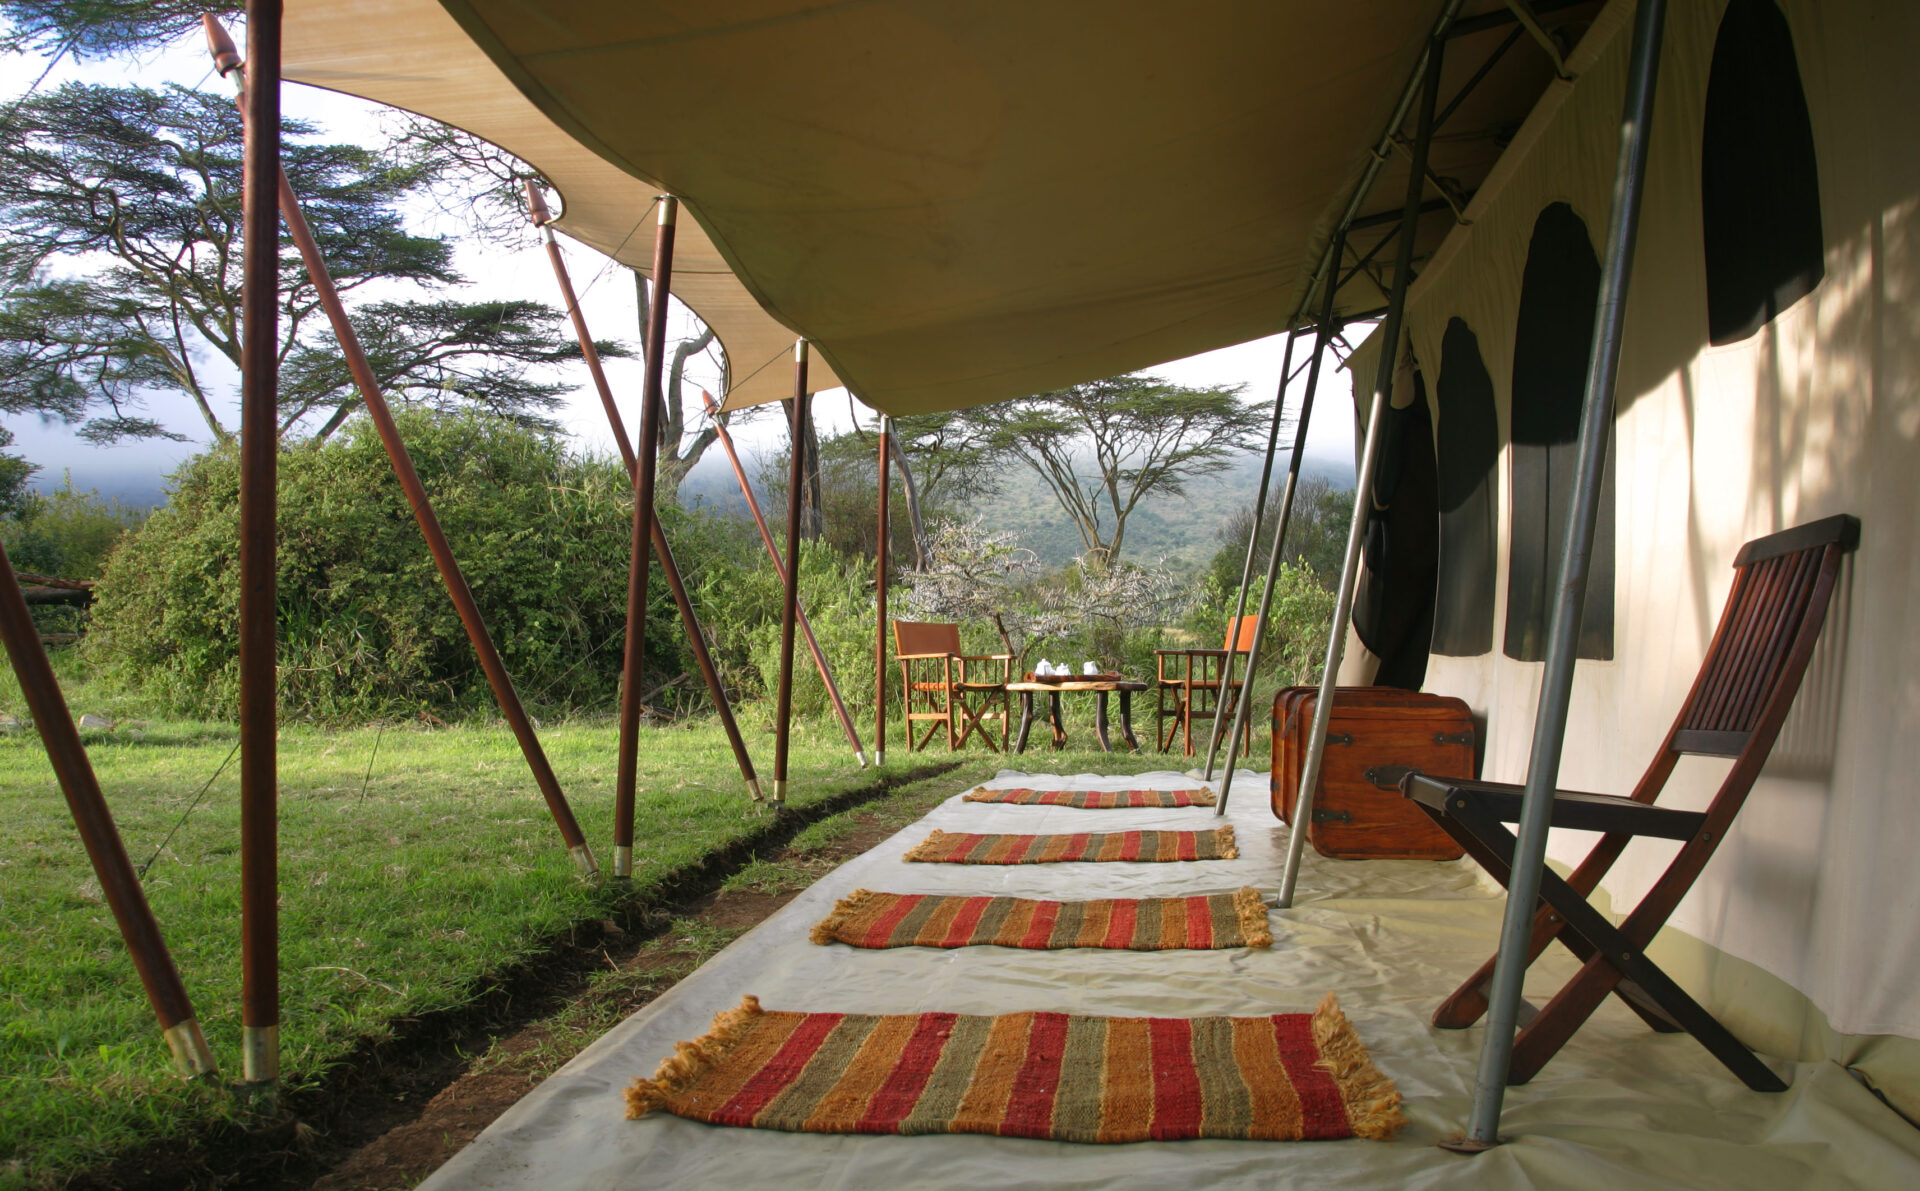 Family tent verandah and table setting at Saruni Wild